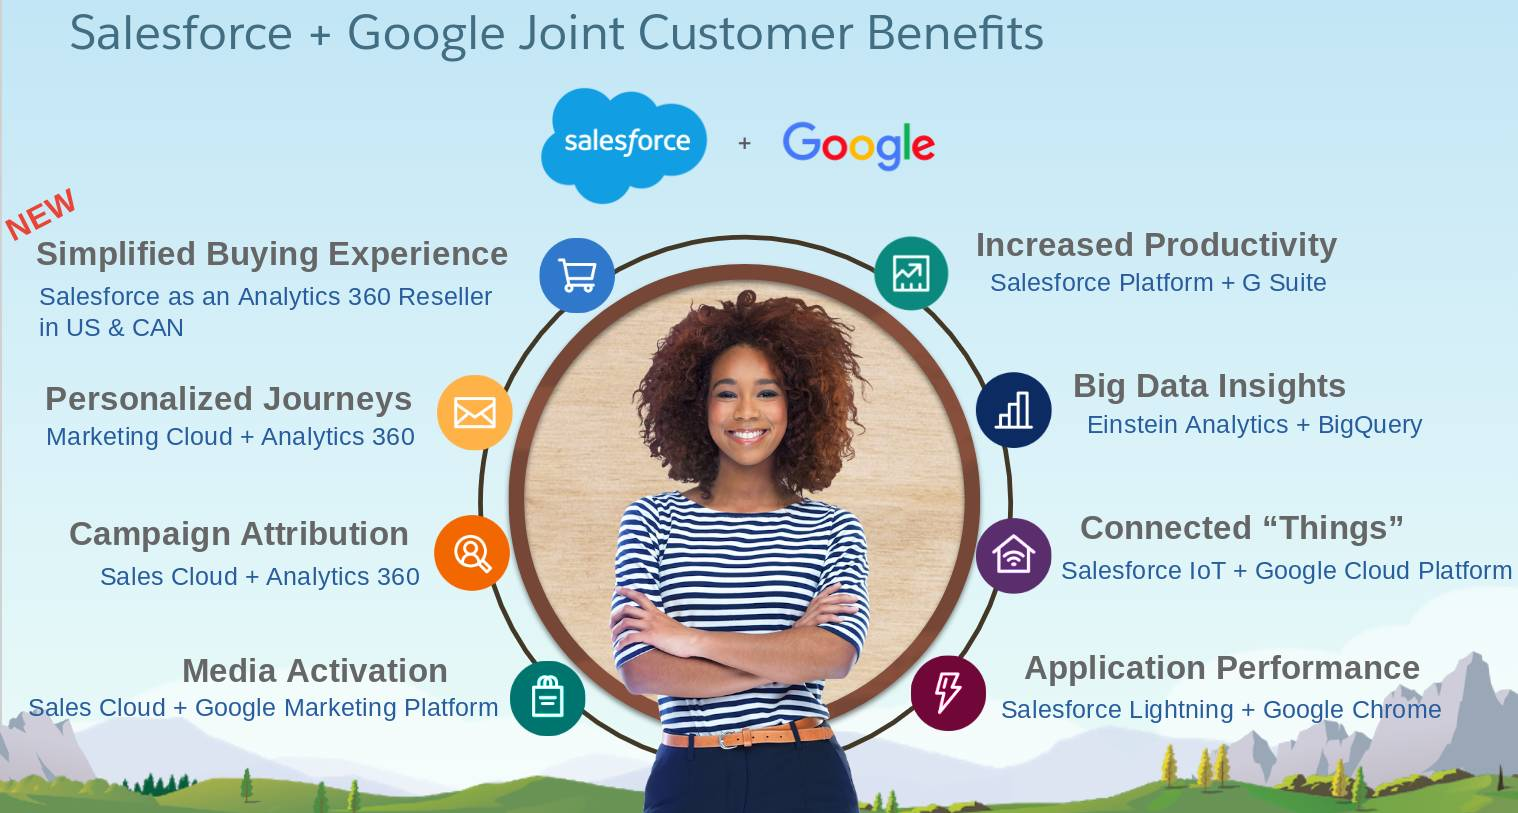 """The Salesforce and Google Joint Benefits include Better Knowing Your Customer, Increased Productivity, Big Data Insights, Connected """"Things,"""" Application Performance, Media Activation, Campaign Attribution, Personalized Journeys, and a Simplified Buying Experience."""